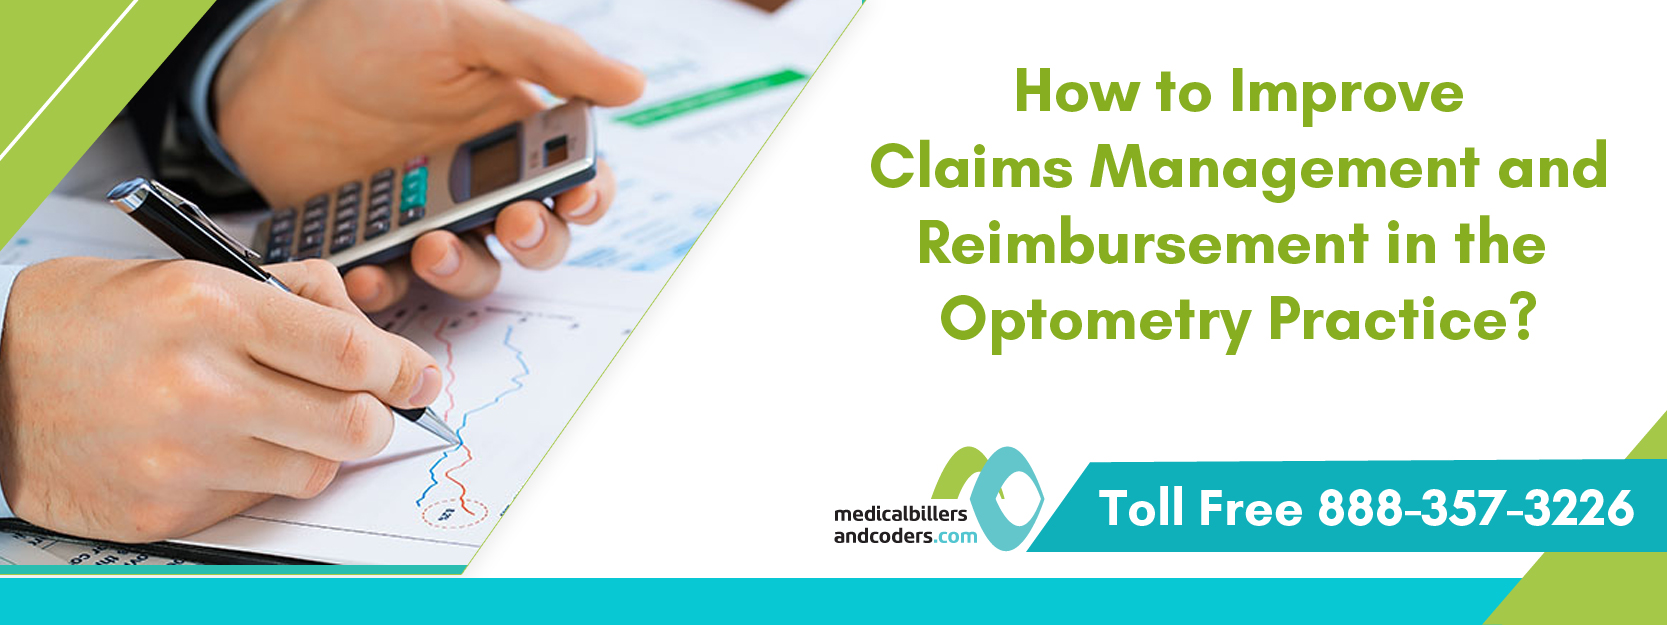 blog_how-to-improve-claims-management-and-reimbursement-in-the-optometry-practice